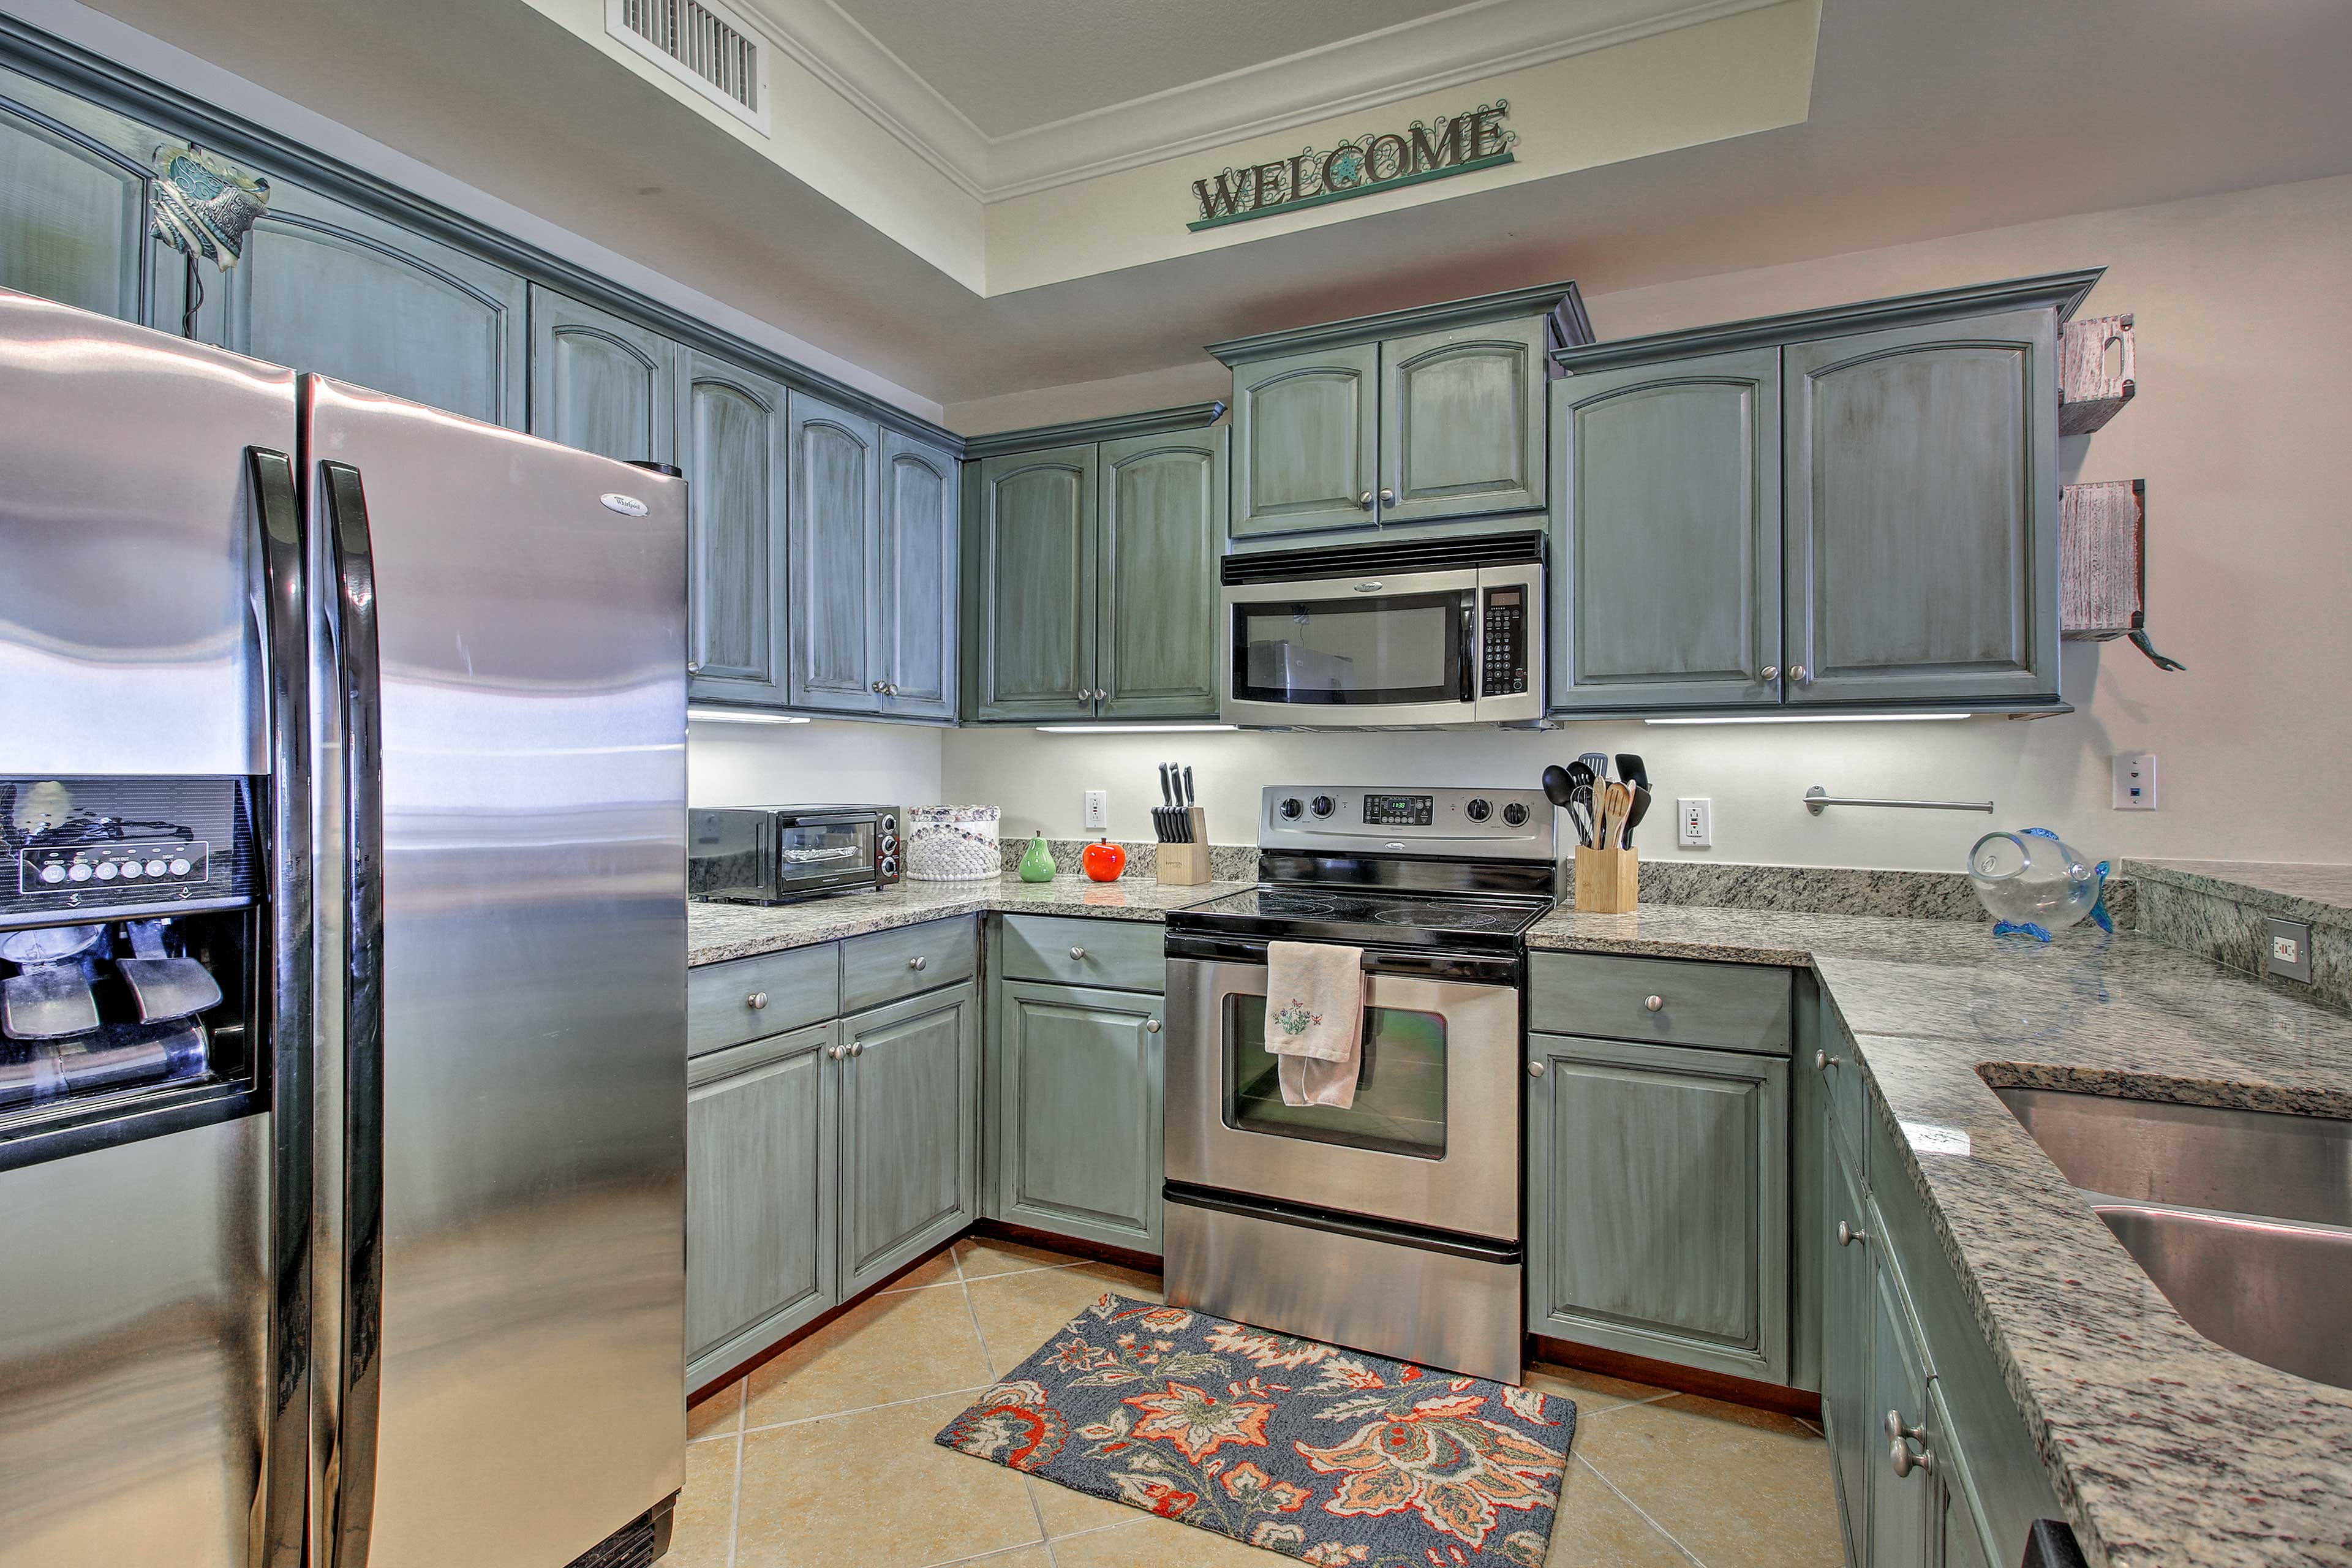 Cook your favorite recipes in the fully equipped kitchen.